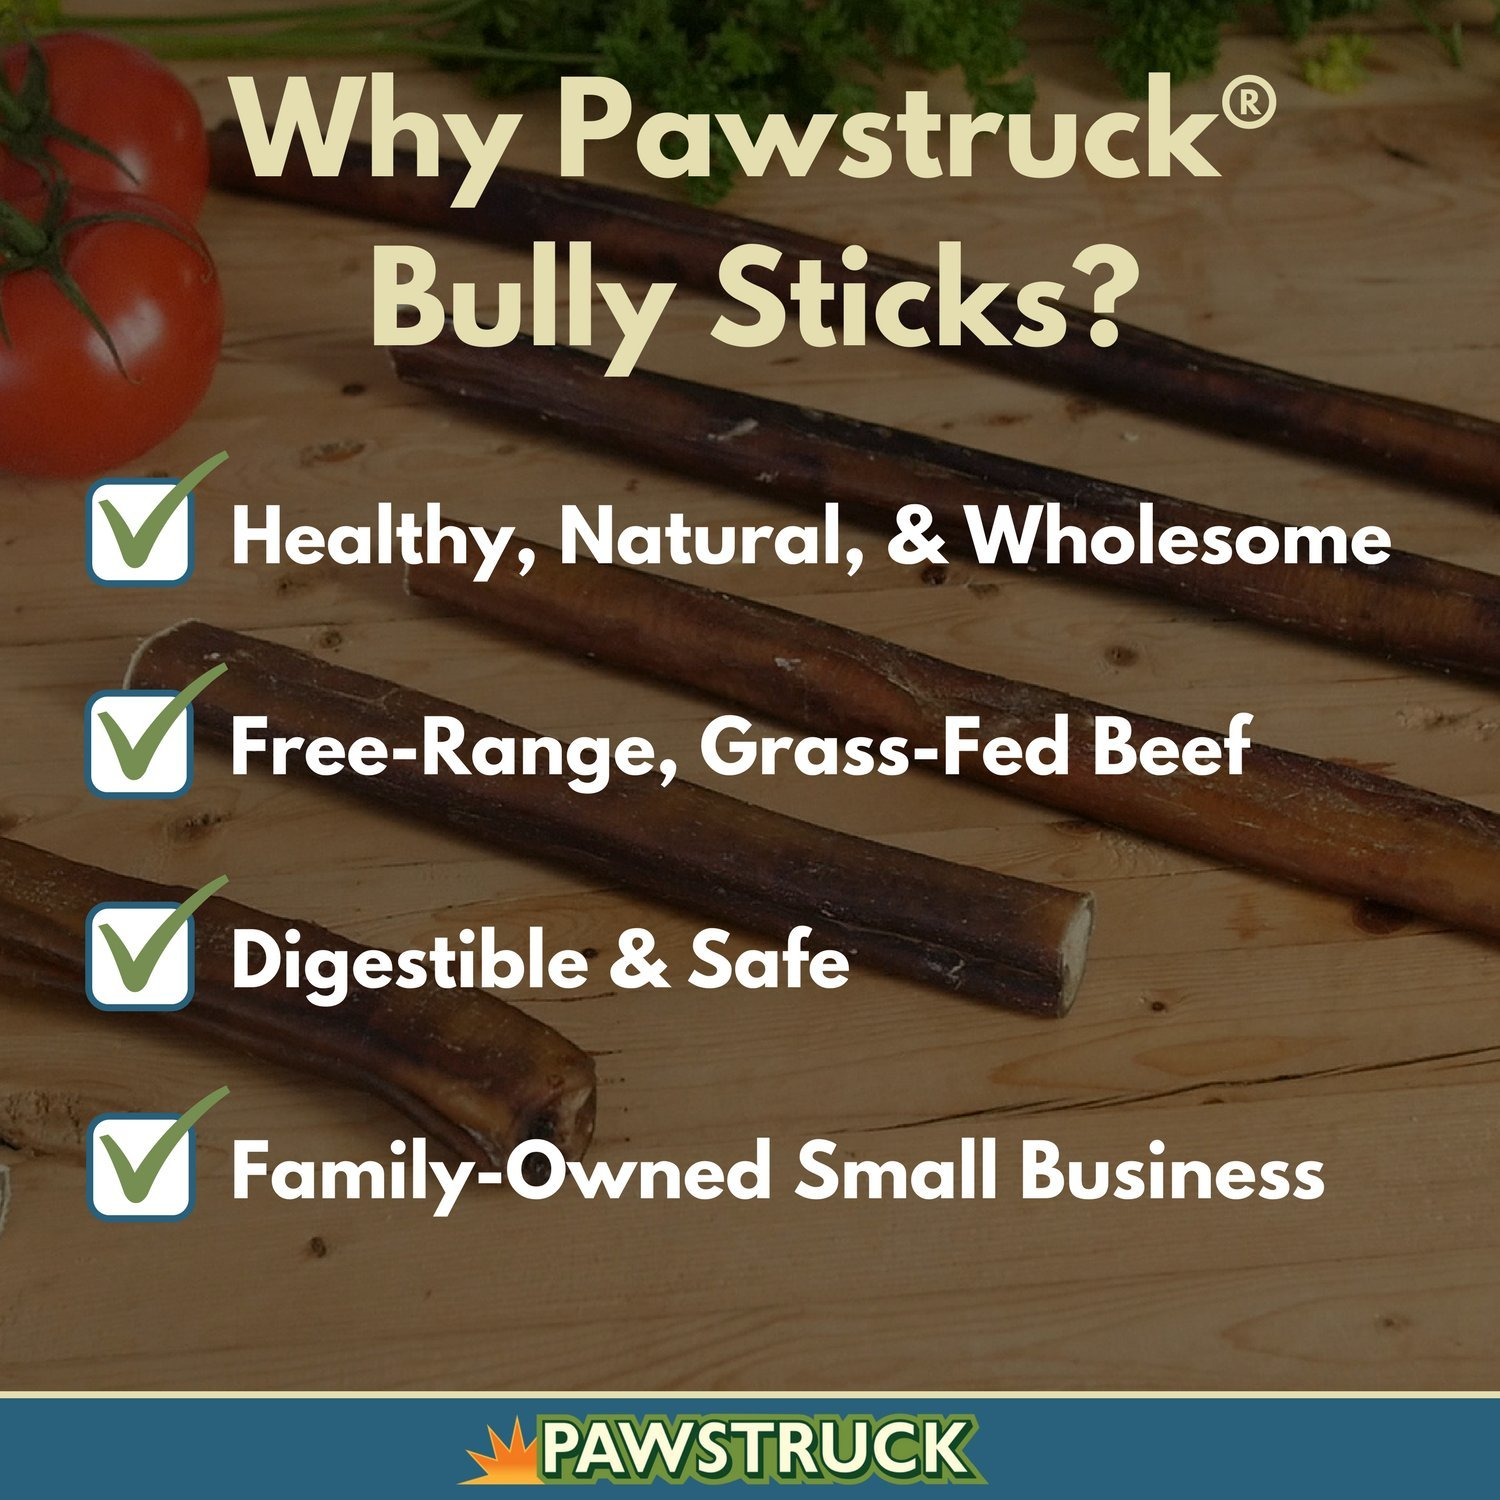 Pawstruck 5 Straight Bully Sticks for Dogs X-Large Thickness All Natural Odorless Bully Bones Long Lasting Chew Dental Treats Best Thick Bullie Sticks for K9 or Puppies Grass-Fed Beef